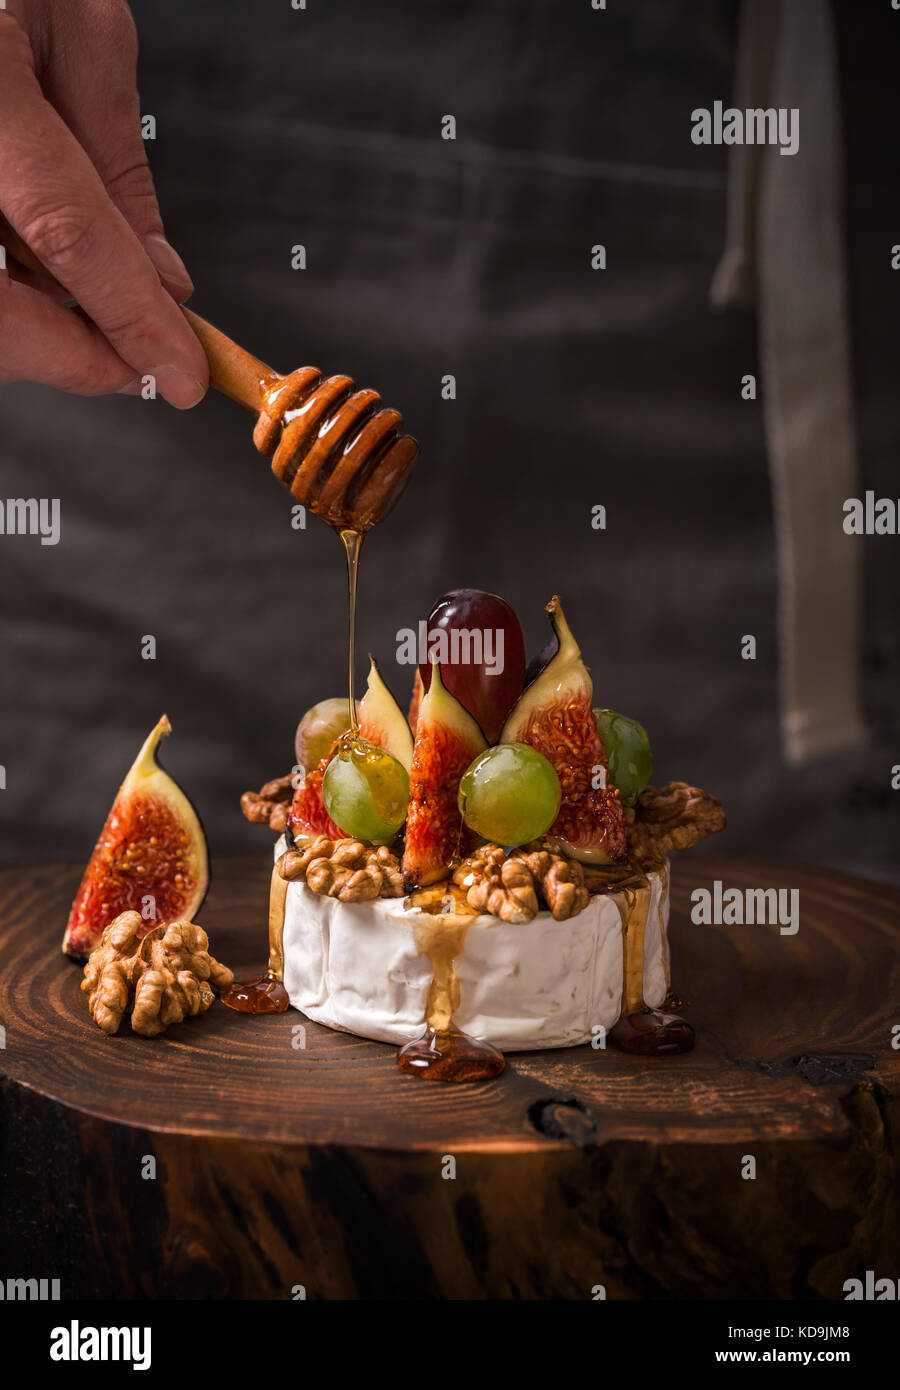 Cooking dessert with camembert cheese, figs and honey - Stock Image